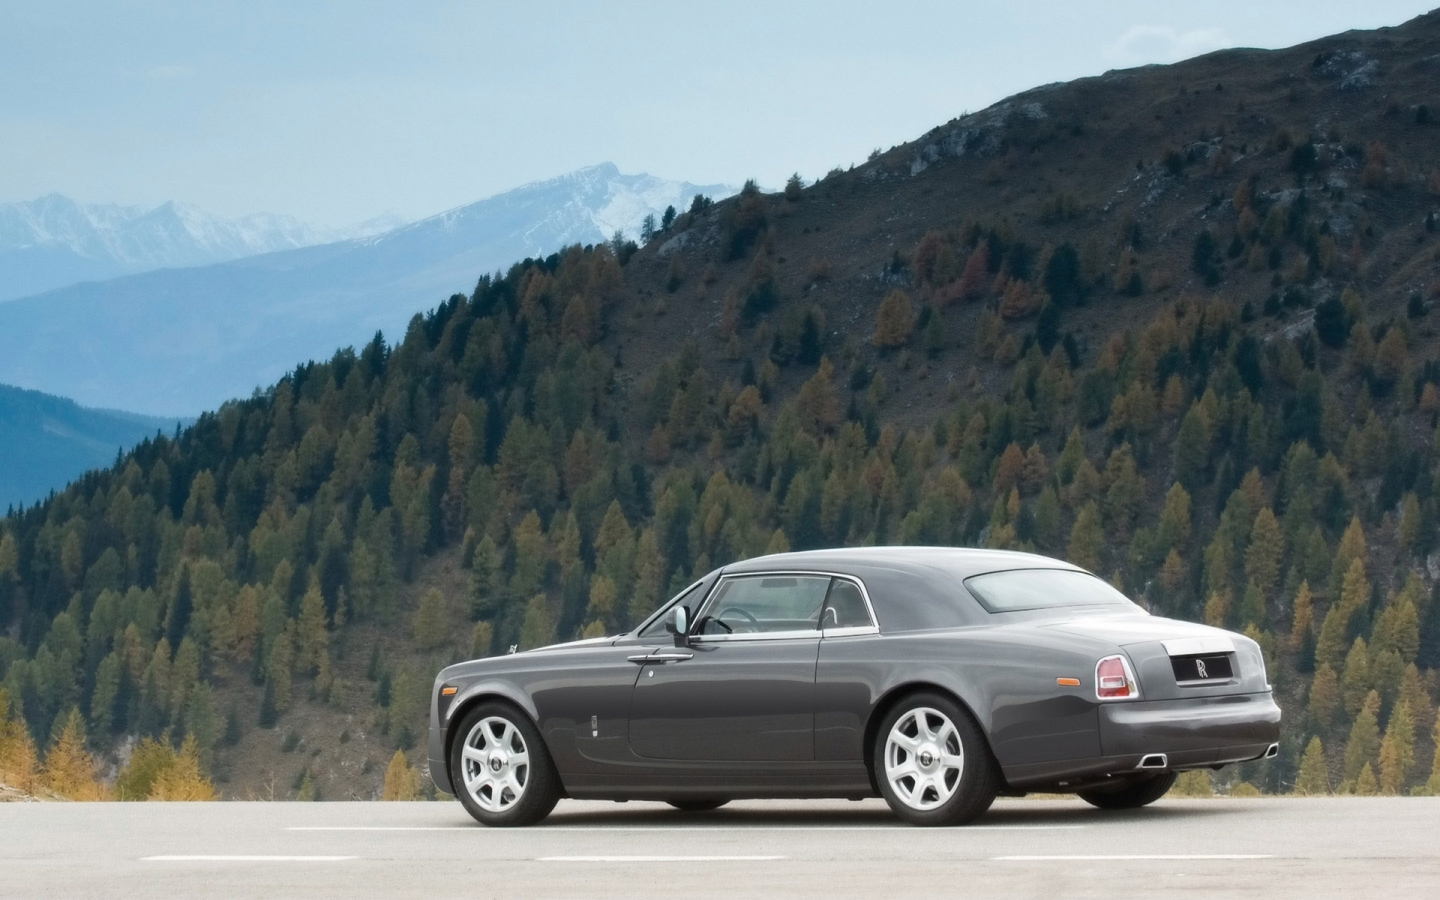 Amazing Rolls Royce Side Angle for 1440 x 900 widescreen resolution